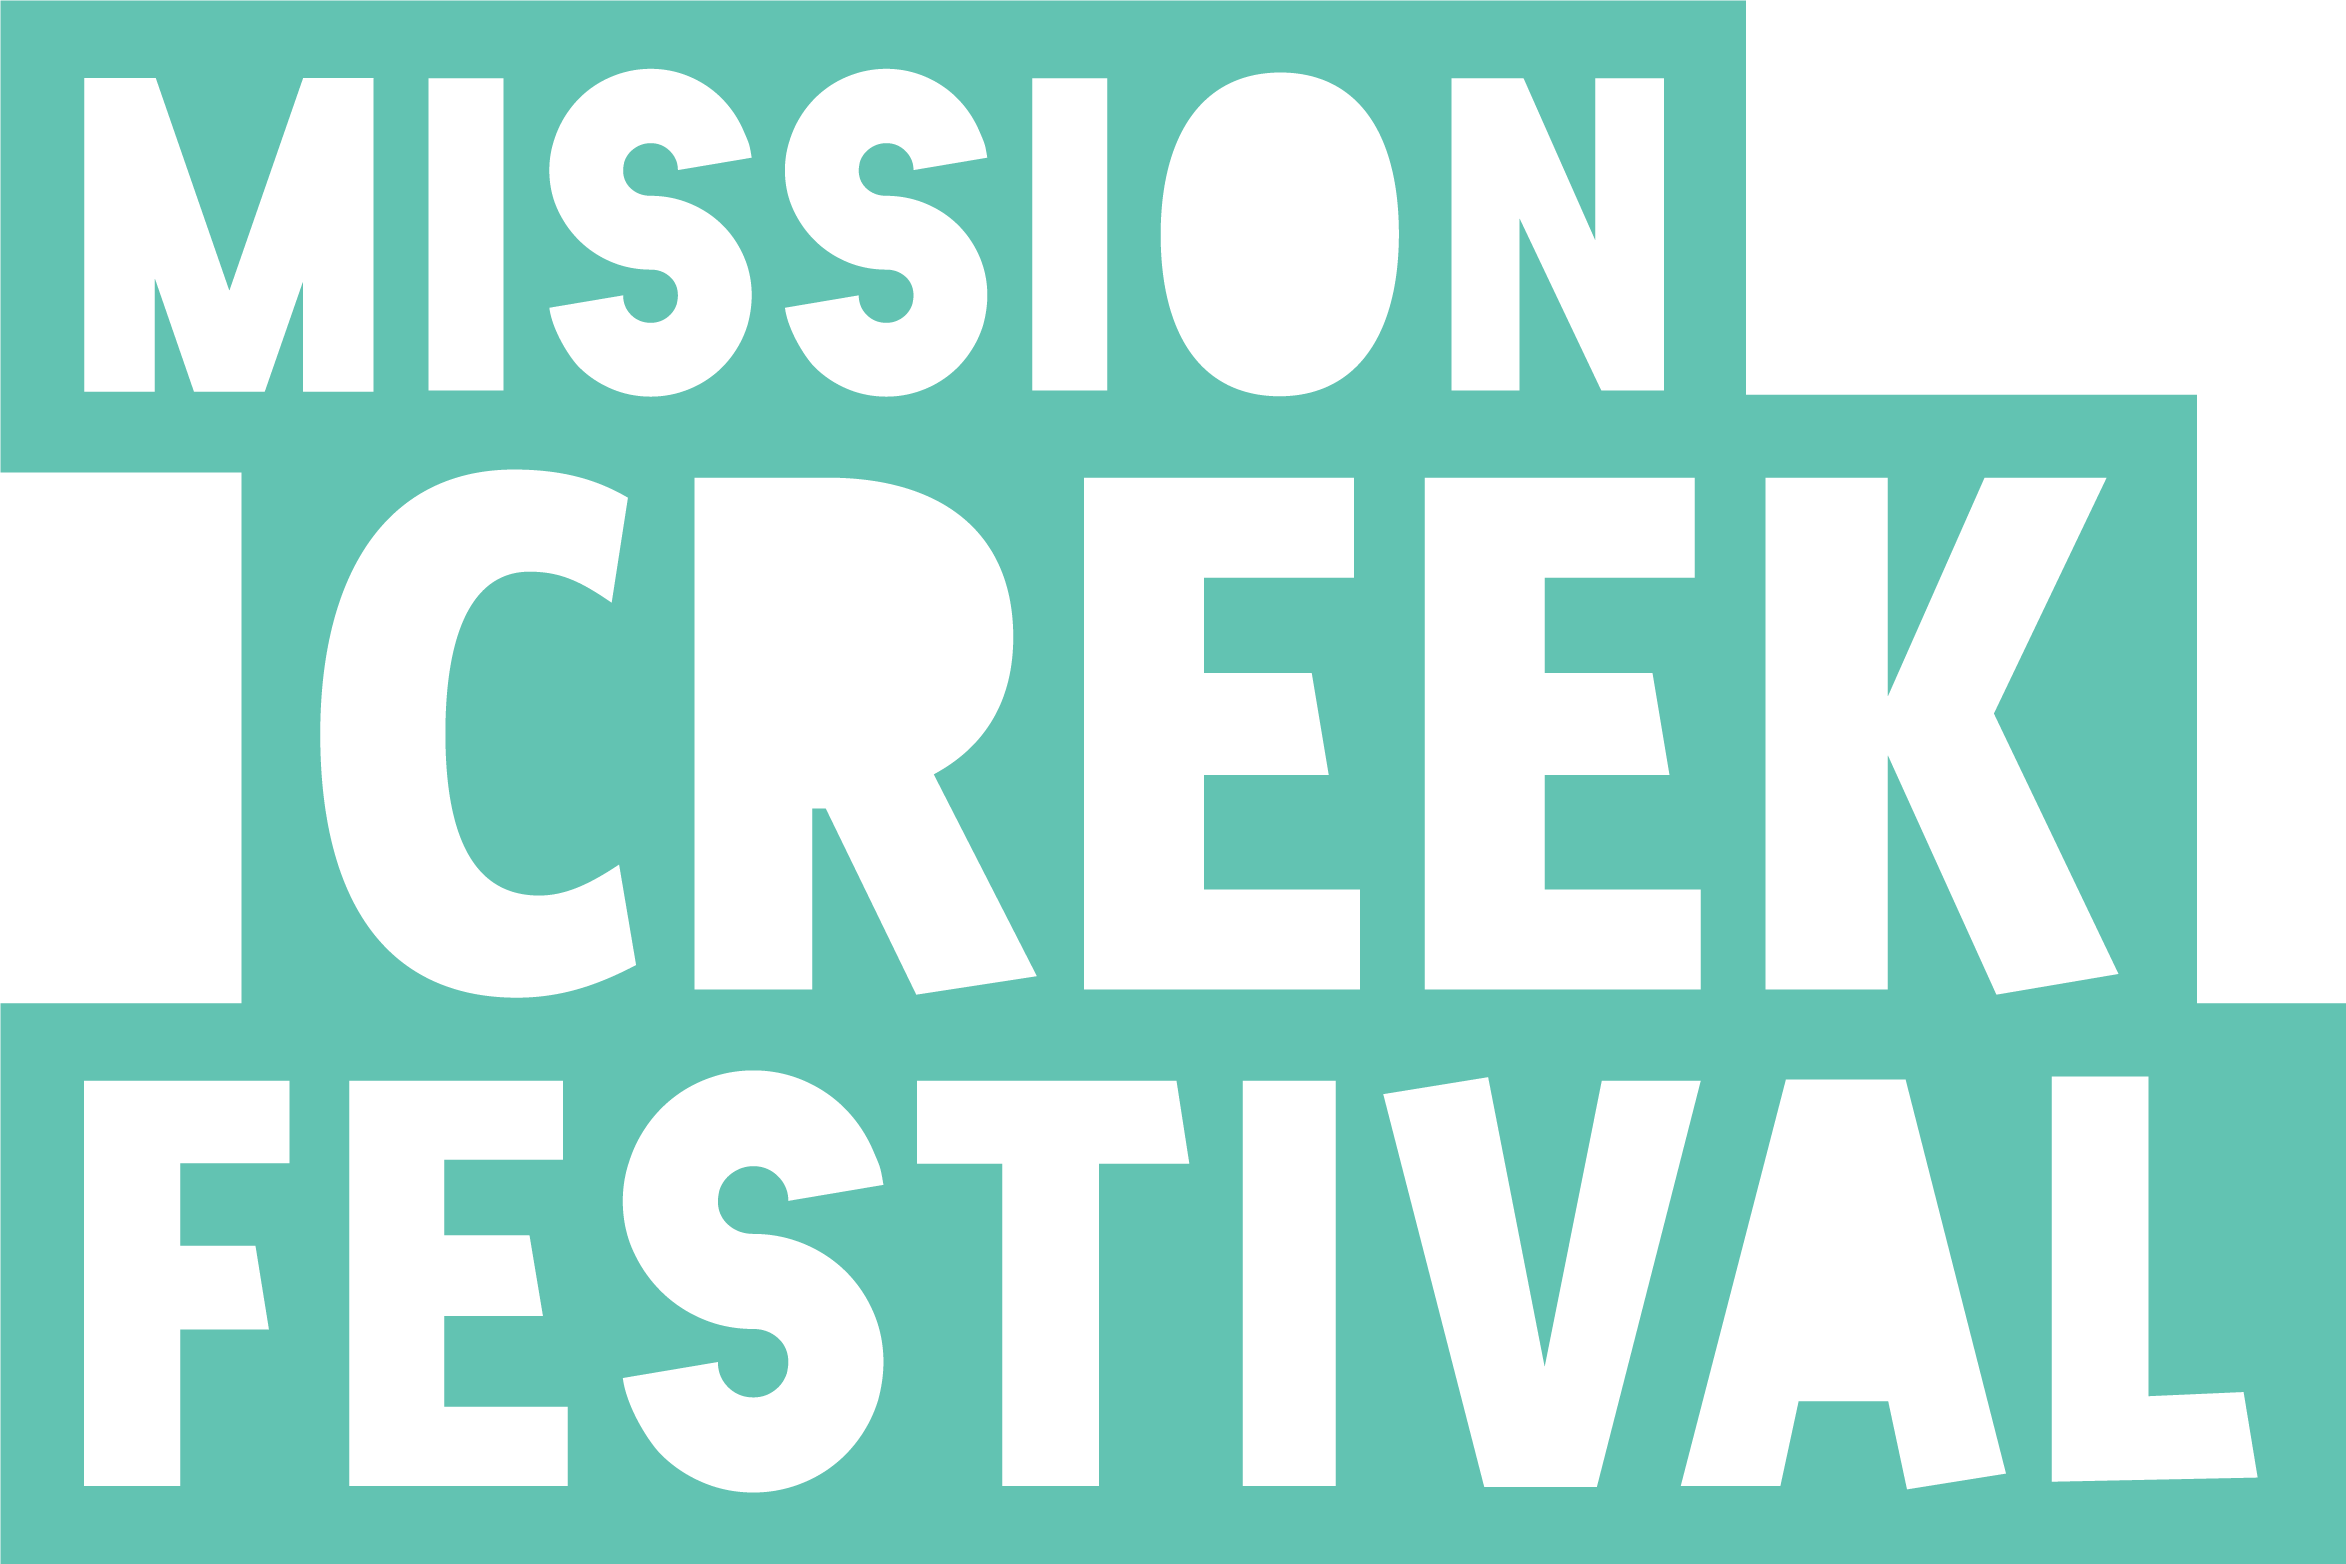 Mission Creek Festival in Iowa City, IA